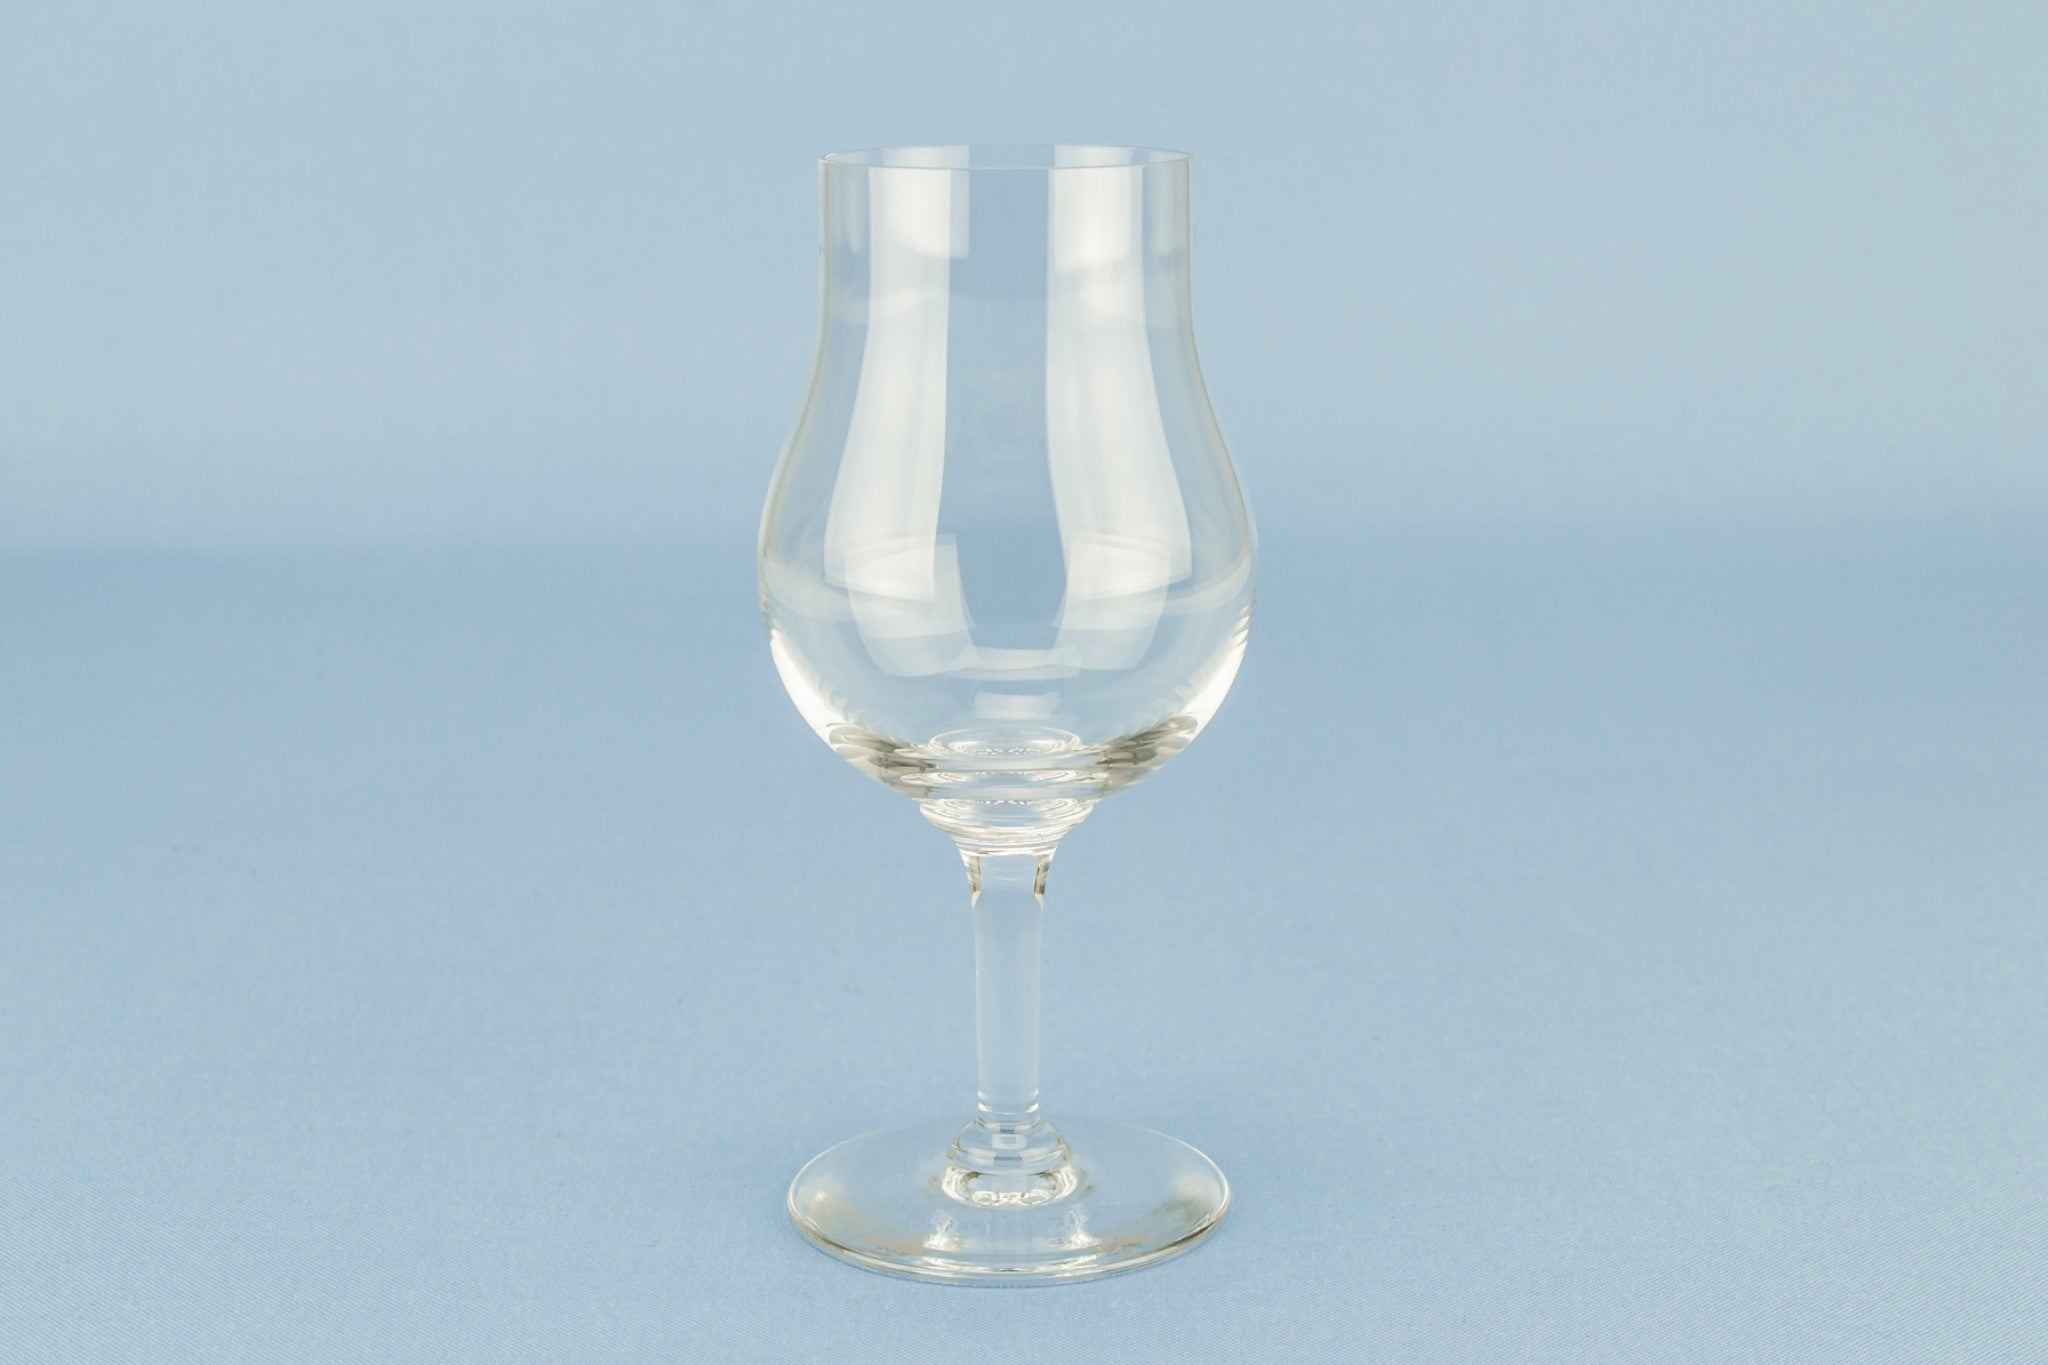 6 cocktail stem glasses